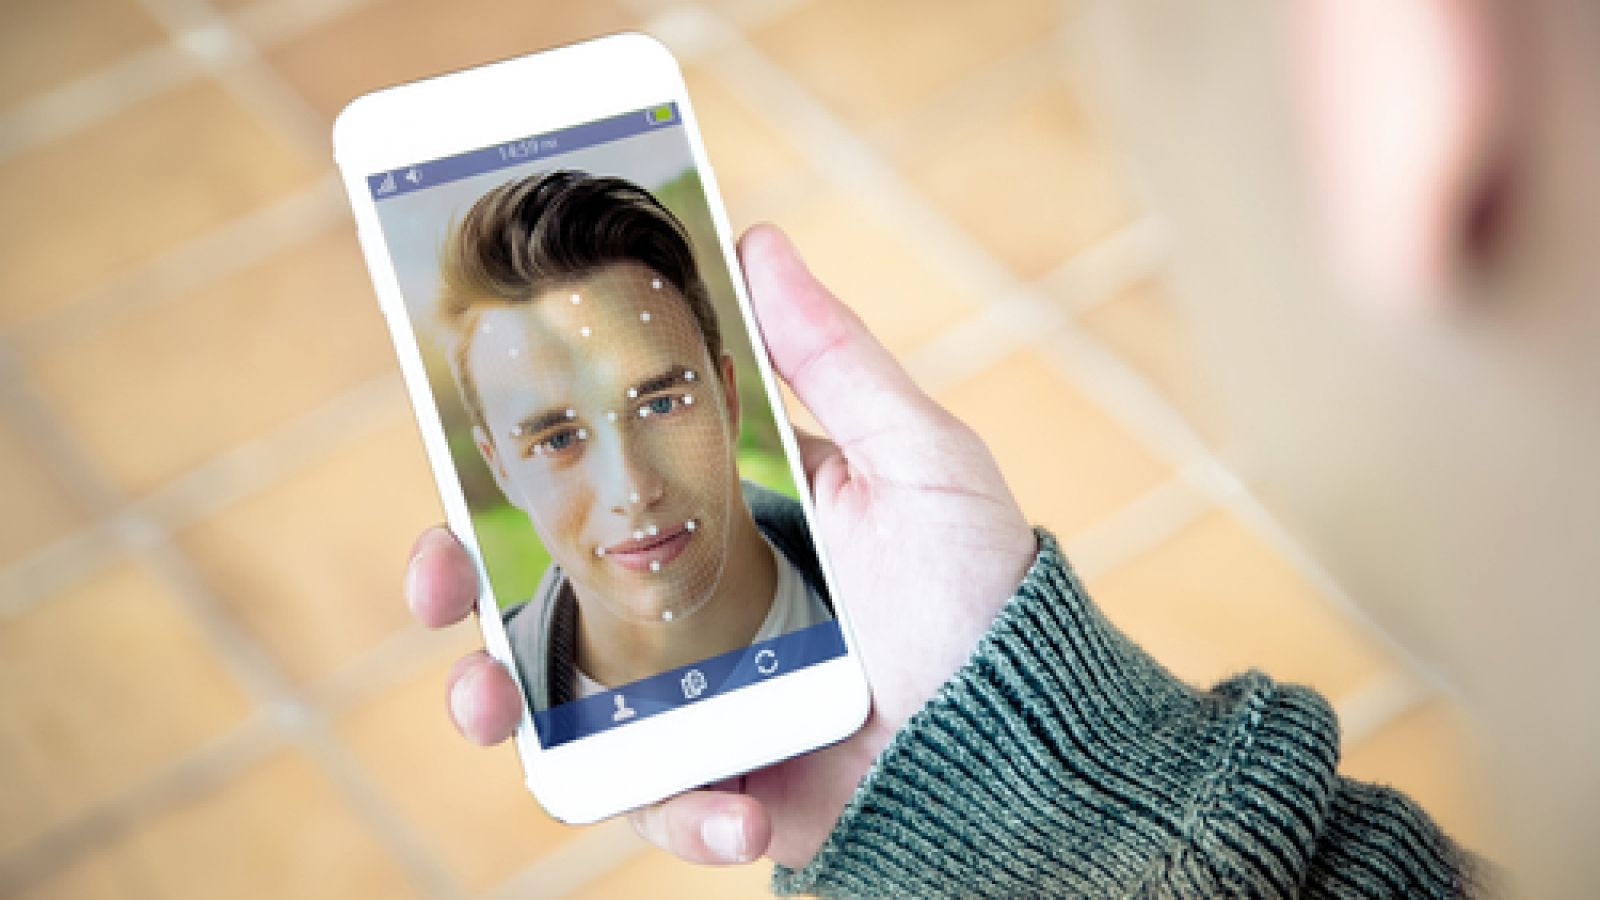 millennial using face id technology on smartphone